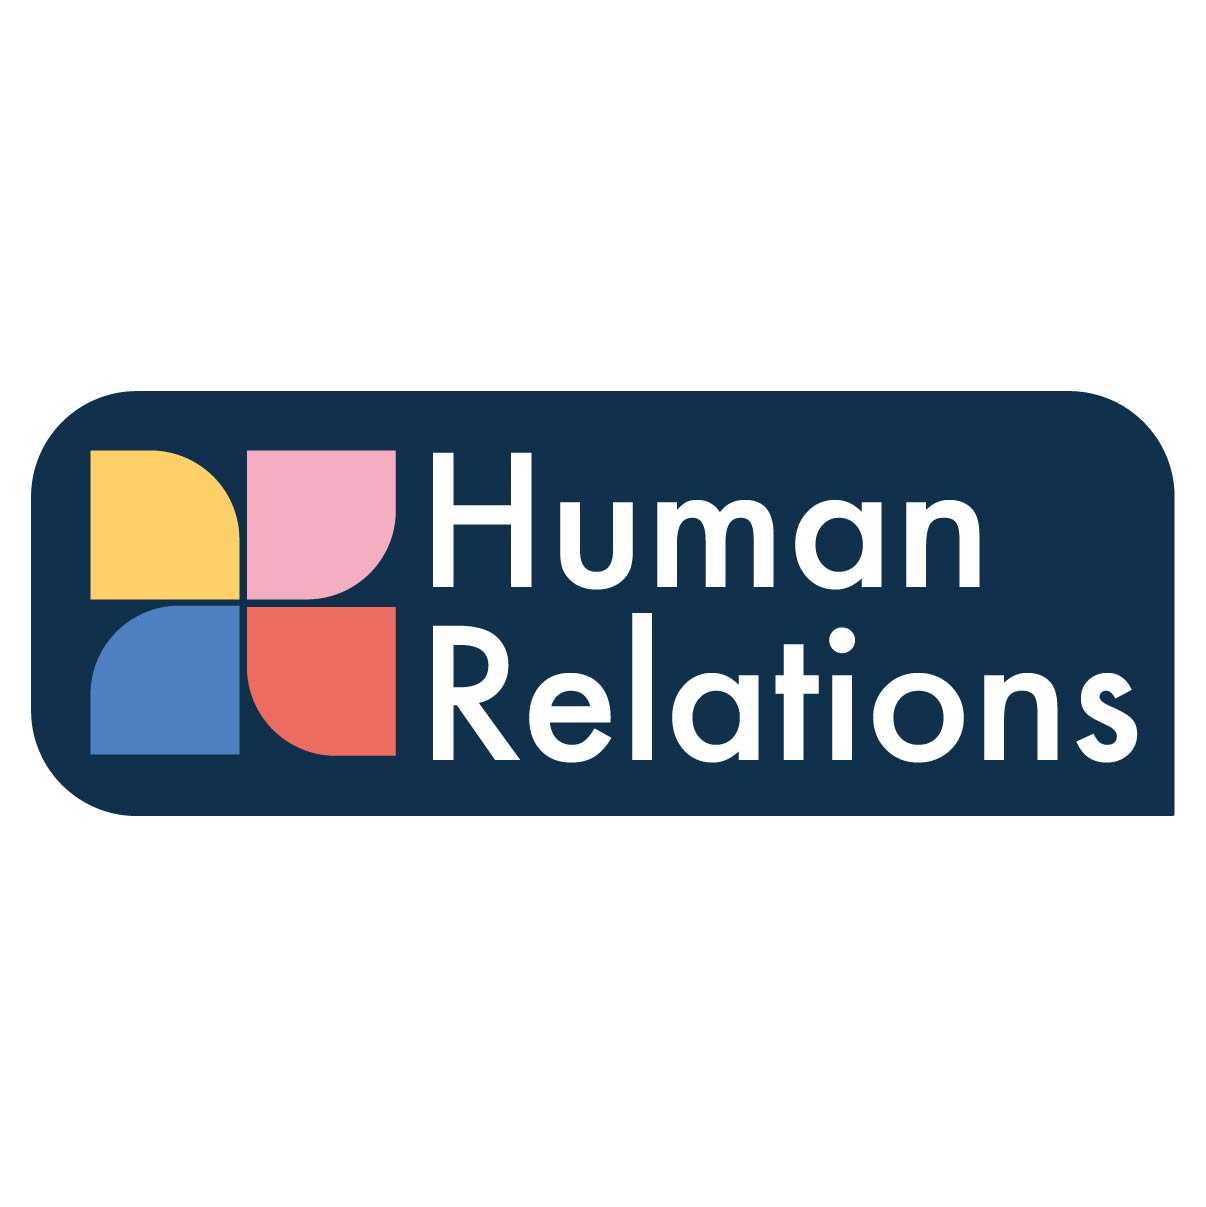 human relations branding for small business with logo design showed